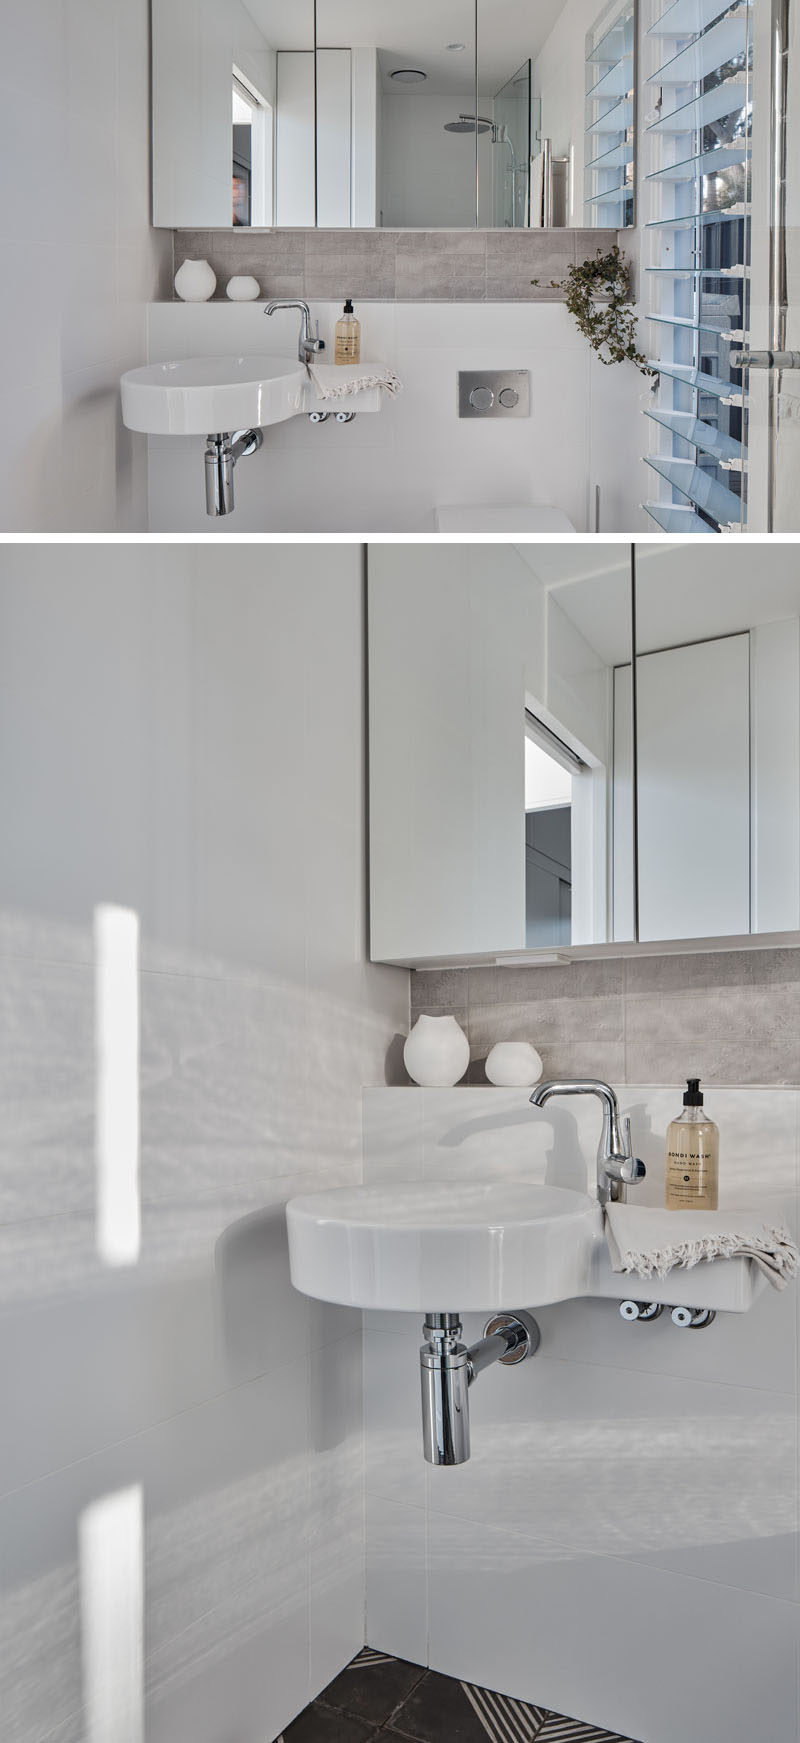 In this small bathroom, a wall-to-wall mirror helps provide storage and make the small space feel larger. A walk-in shower is located on the opposite wall, while louver windows allow for natural air flow. #SmallBathroom #TinyBathroom